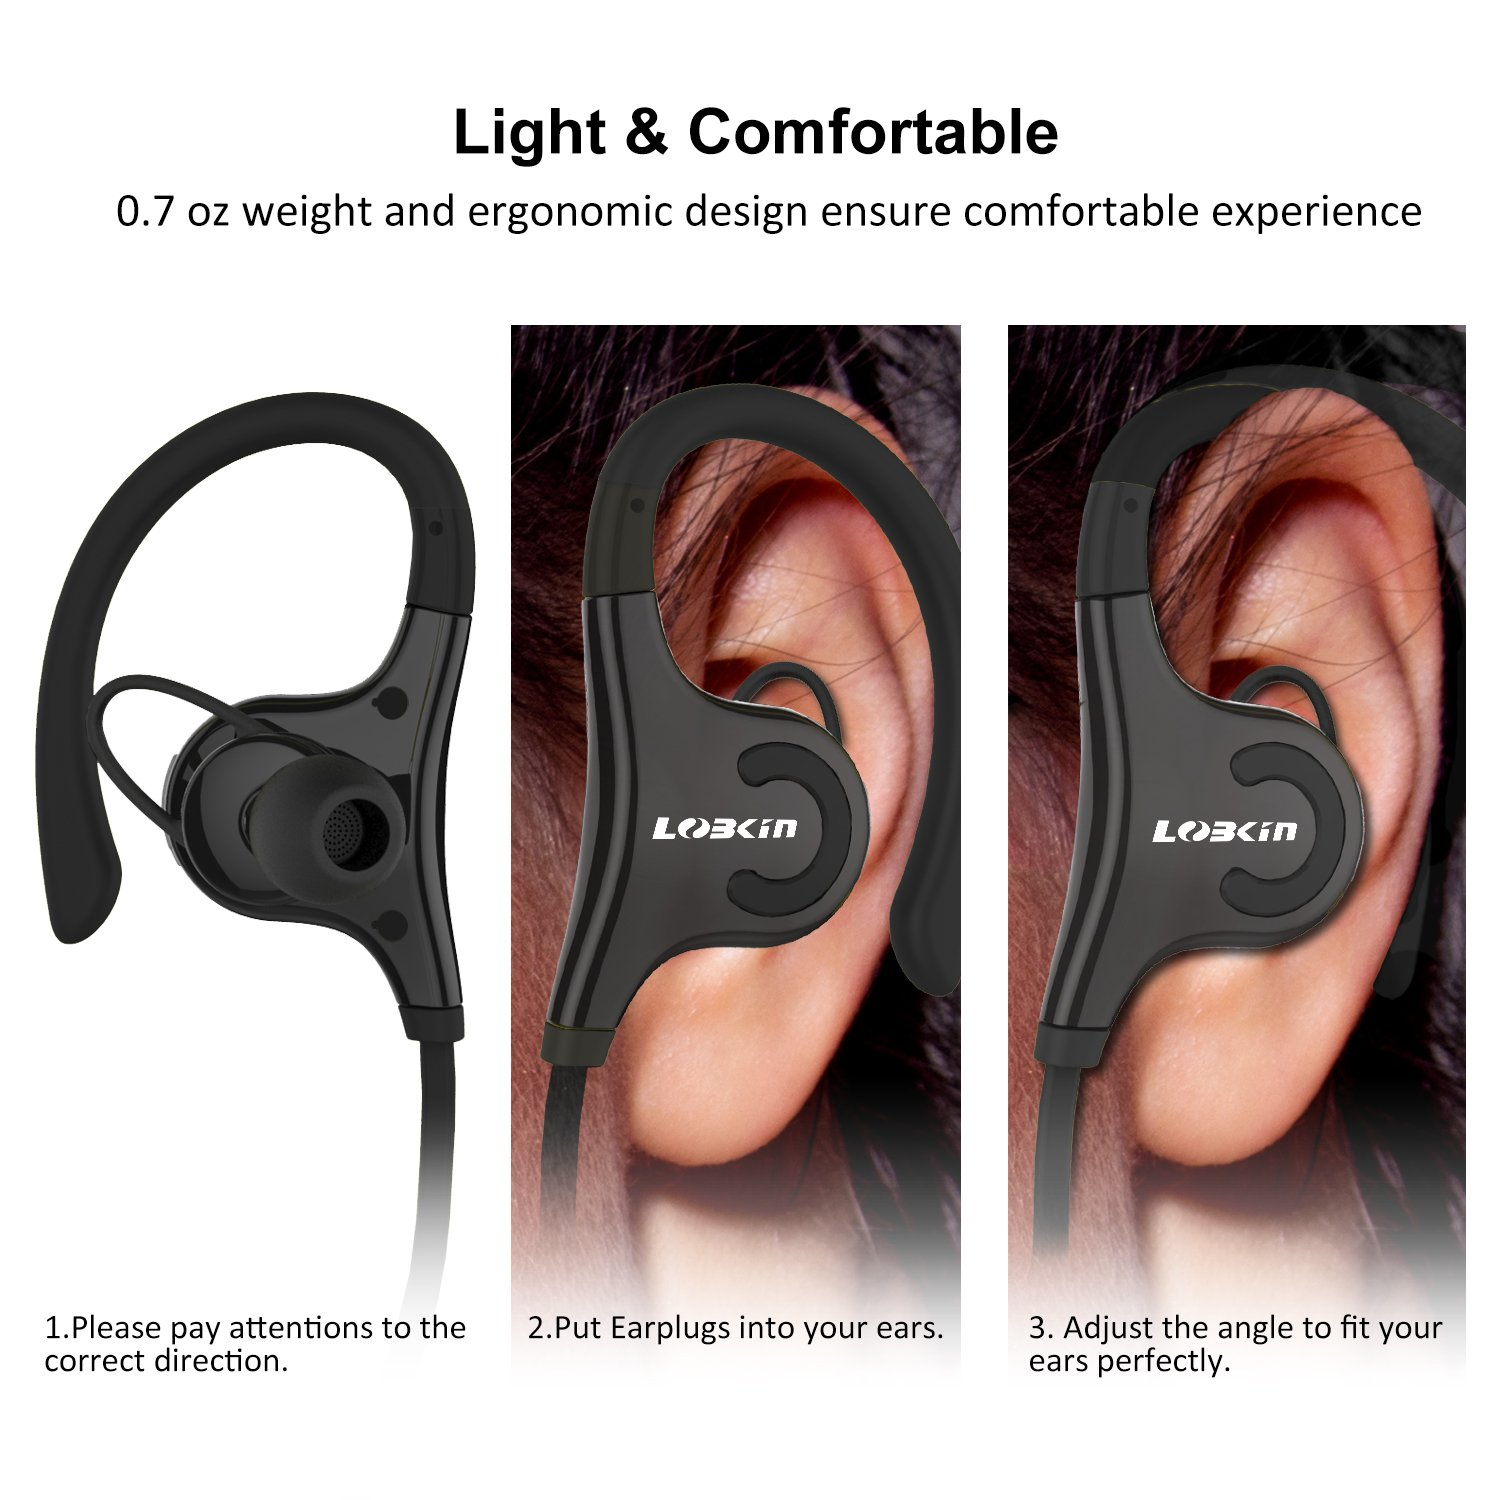 Bluetooth Headphones, Lobkin Wireless Headset Bluetooth V4.1 Stereo In Ear Earbuds Noise Cancelling Headphones Sweatproof Sports Earphones with Mic (Black)